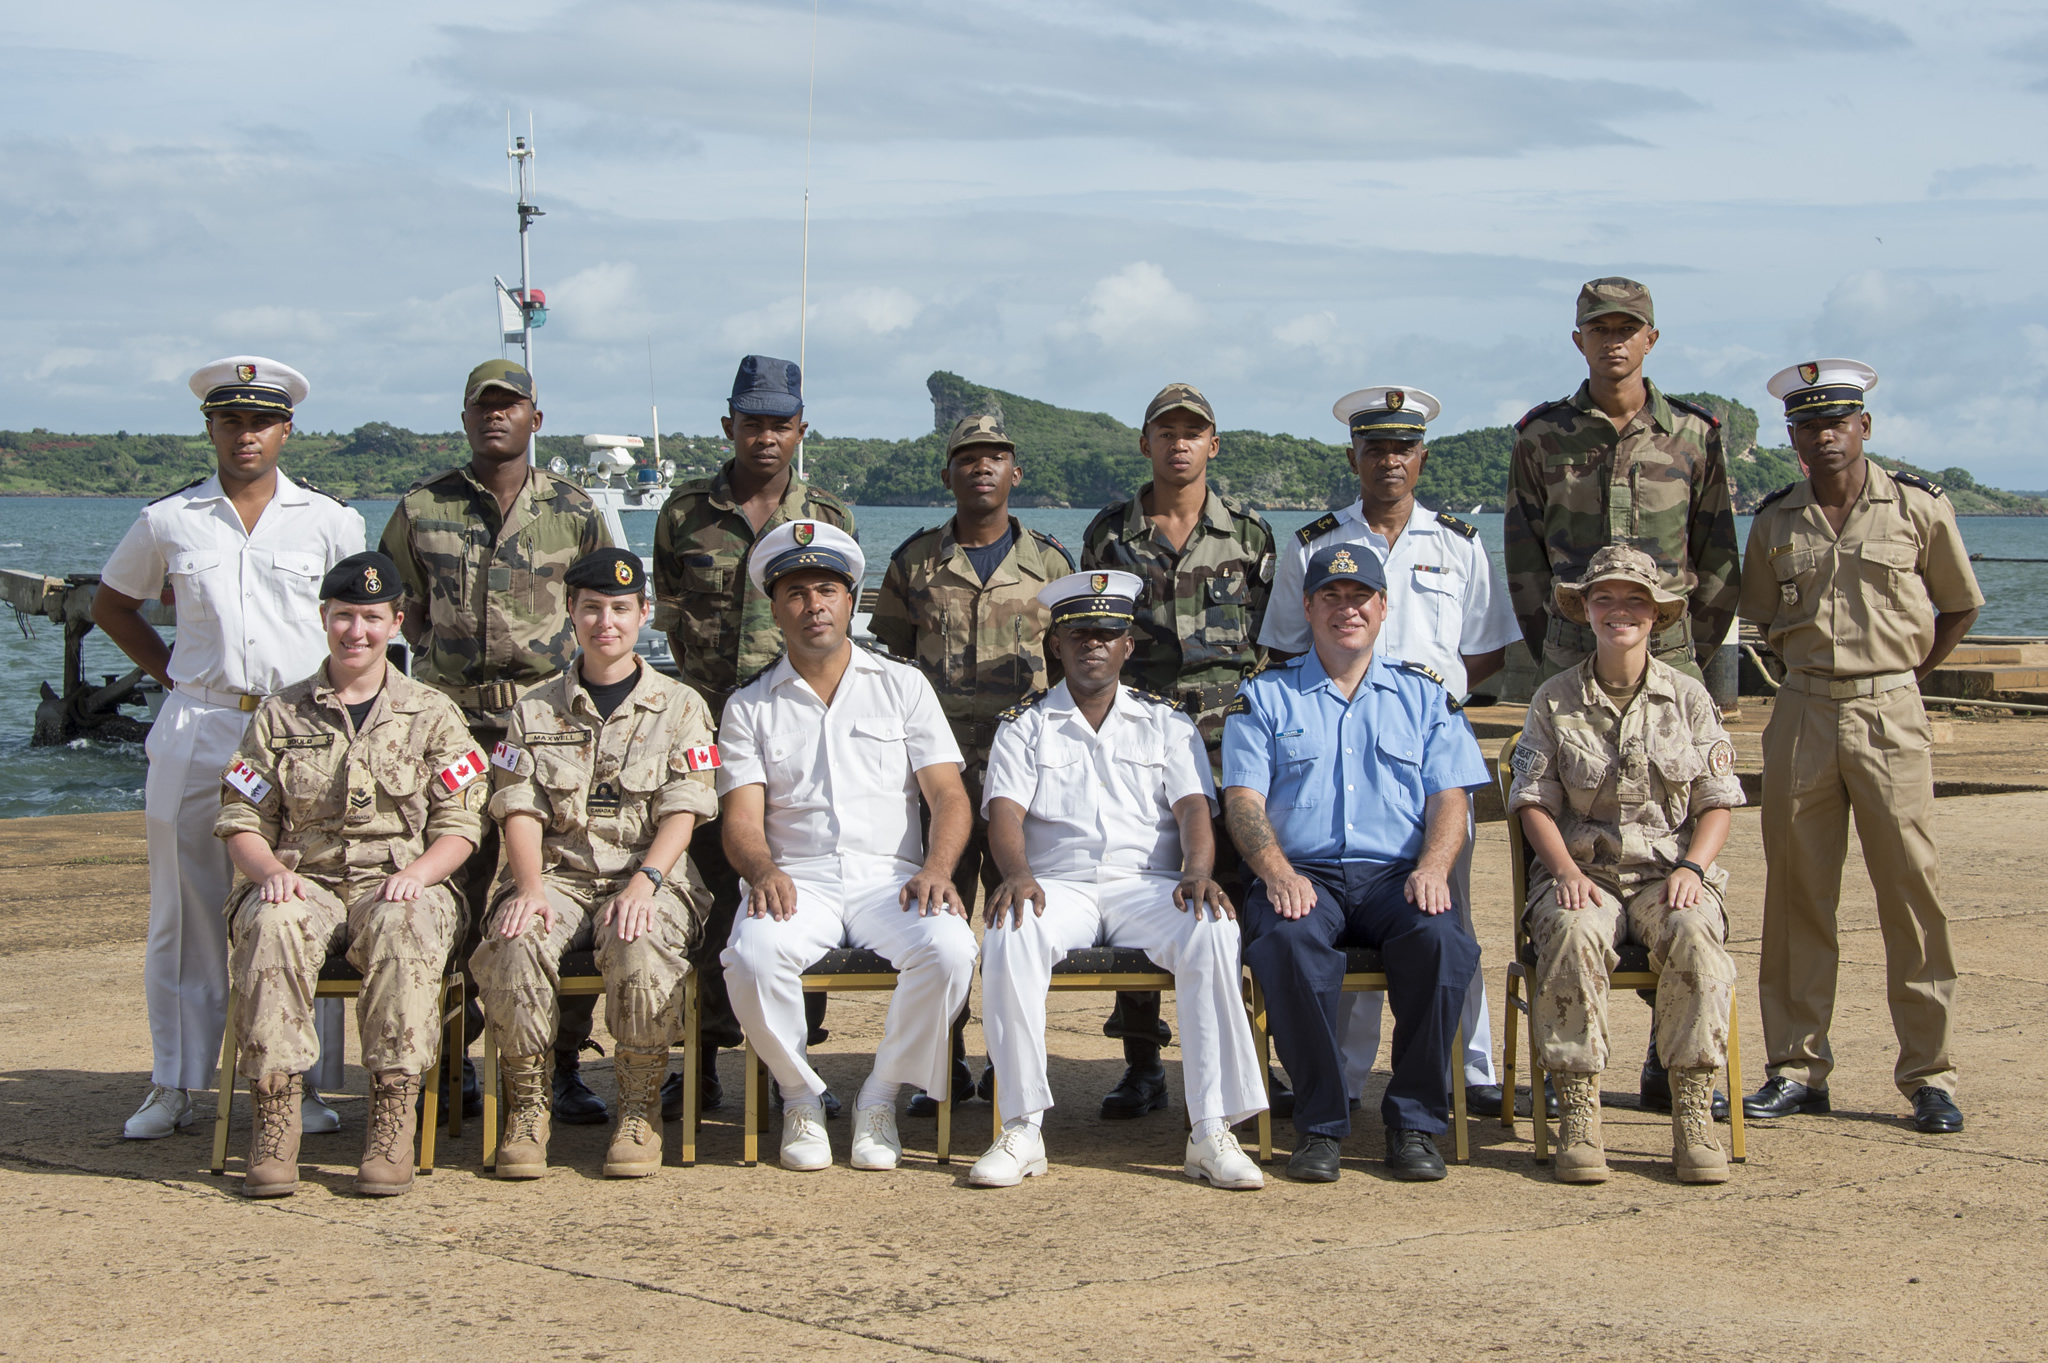 Antsiranana, Madagascar. February 6, 2017 – Canadian mentors and Malagasy students of the Maritime Operations Centre pose for a photo during Exercise CUTLASS EXPRESS 17 at the Antsiranana Naval Base. (Photo: Cpl Gabrielle DesRochers, Canadian Forces Combat Camera)